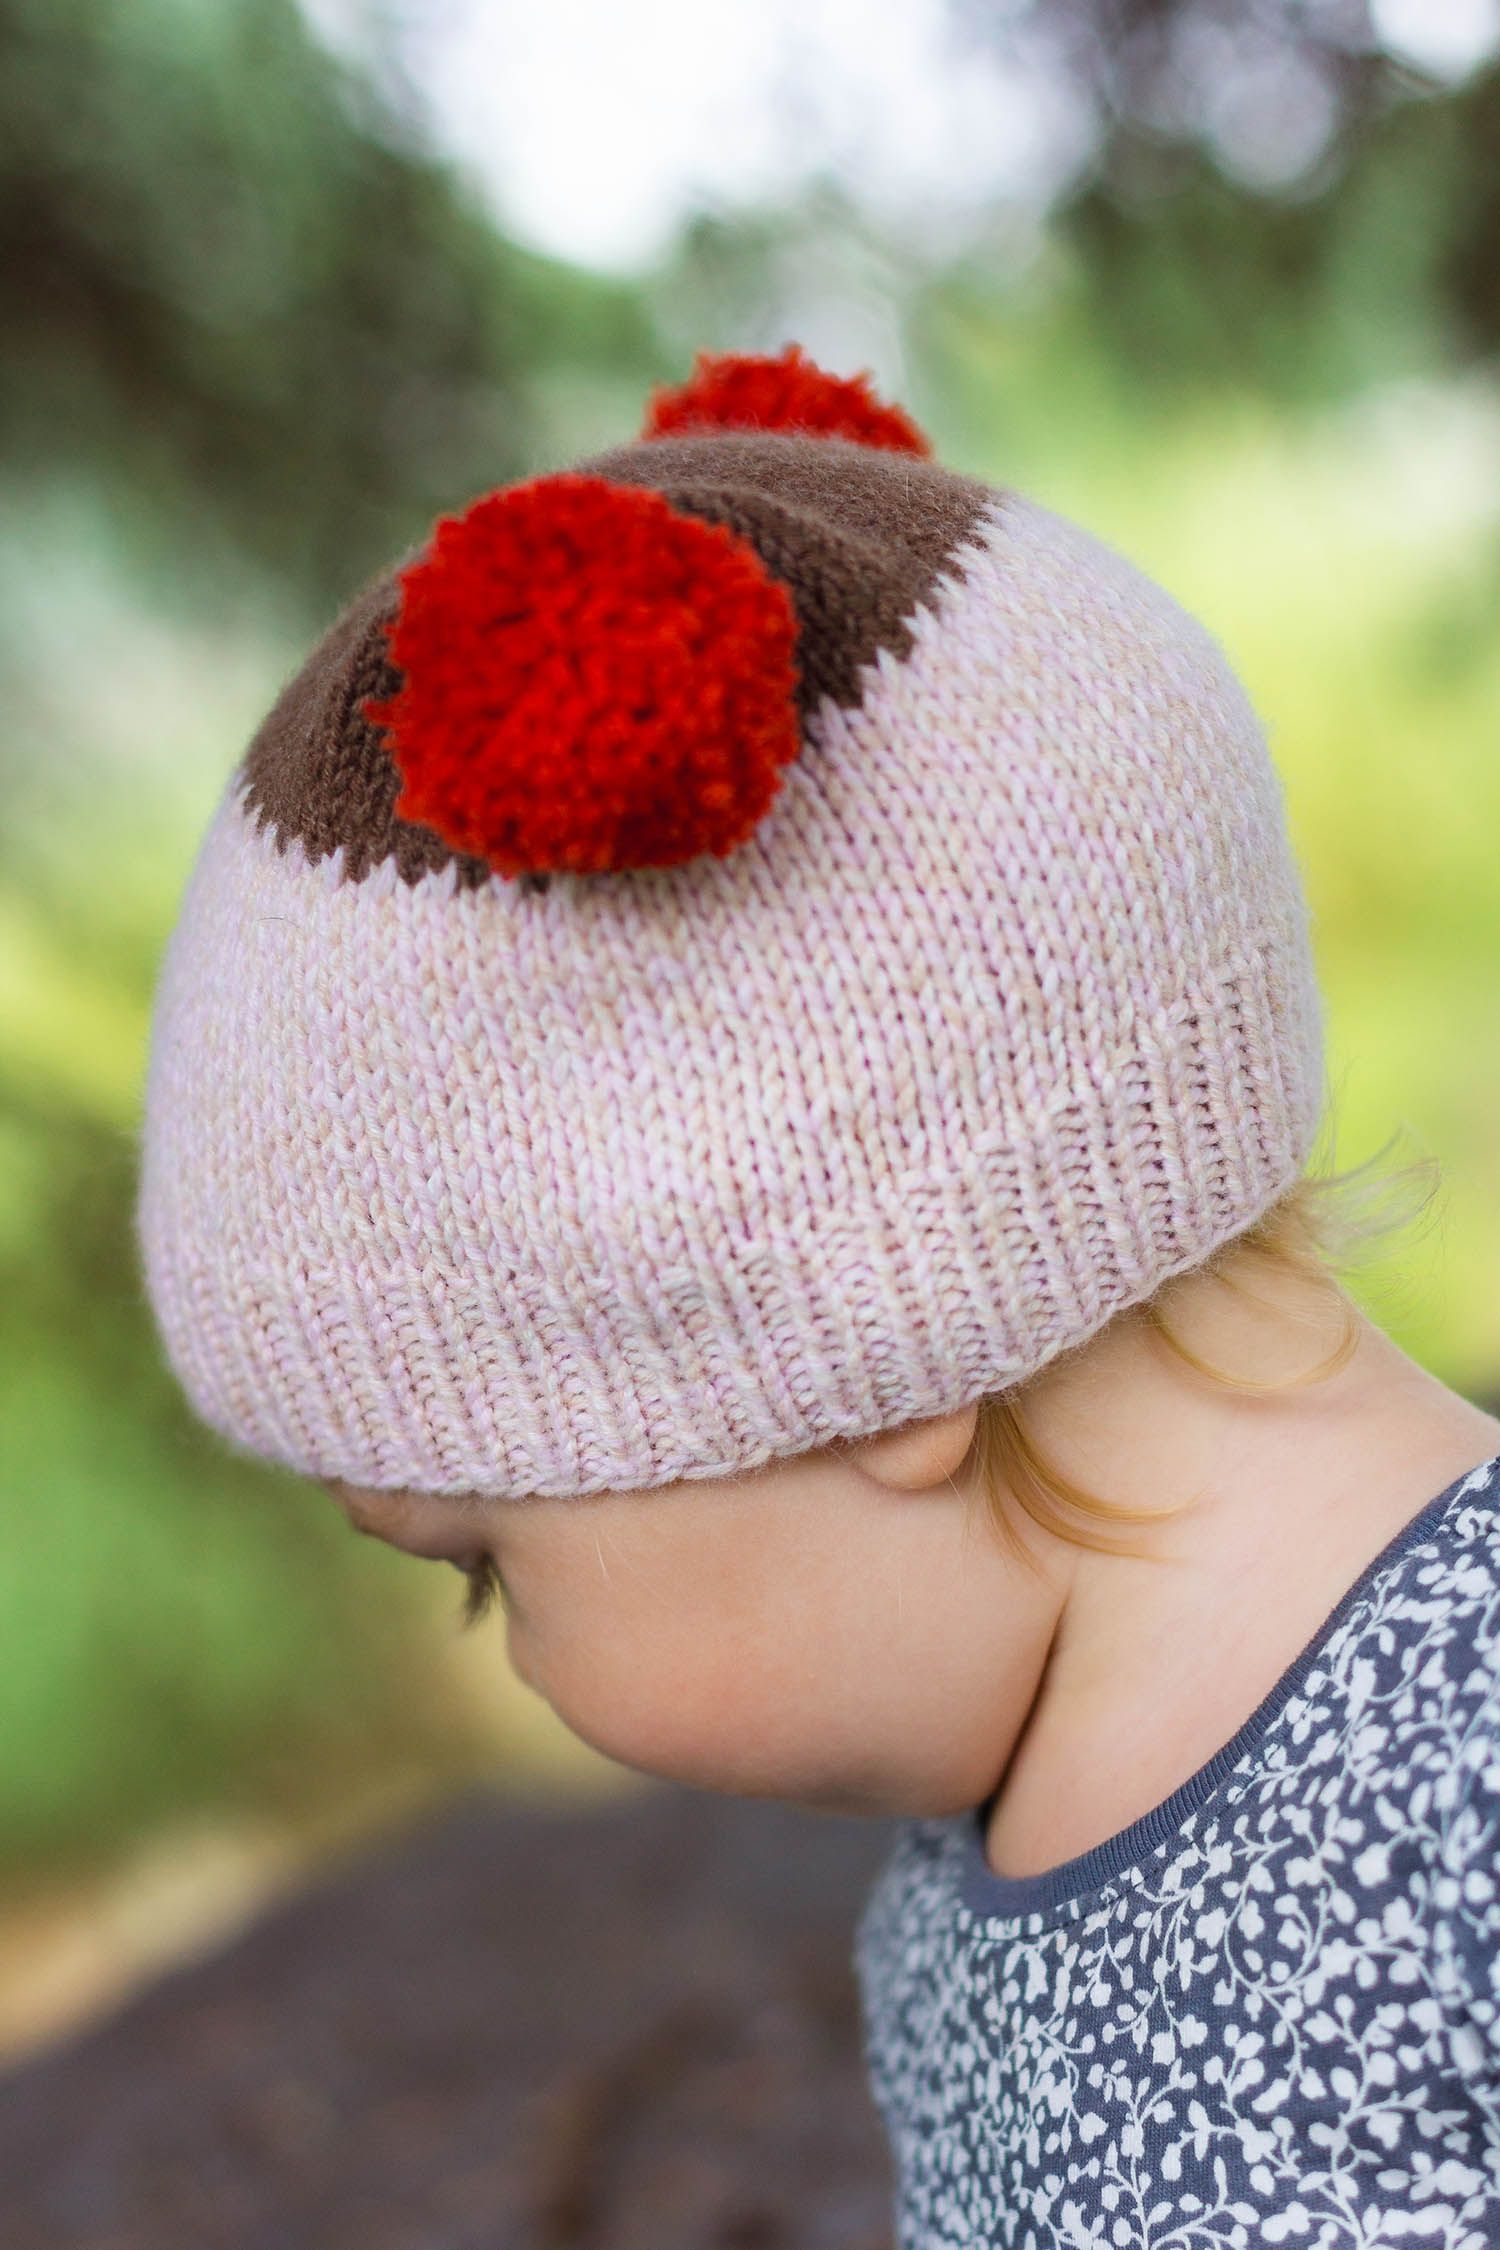 Baby hat knitting pattern with pom pom ears so adorable